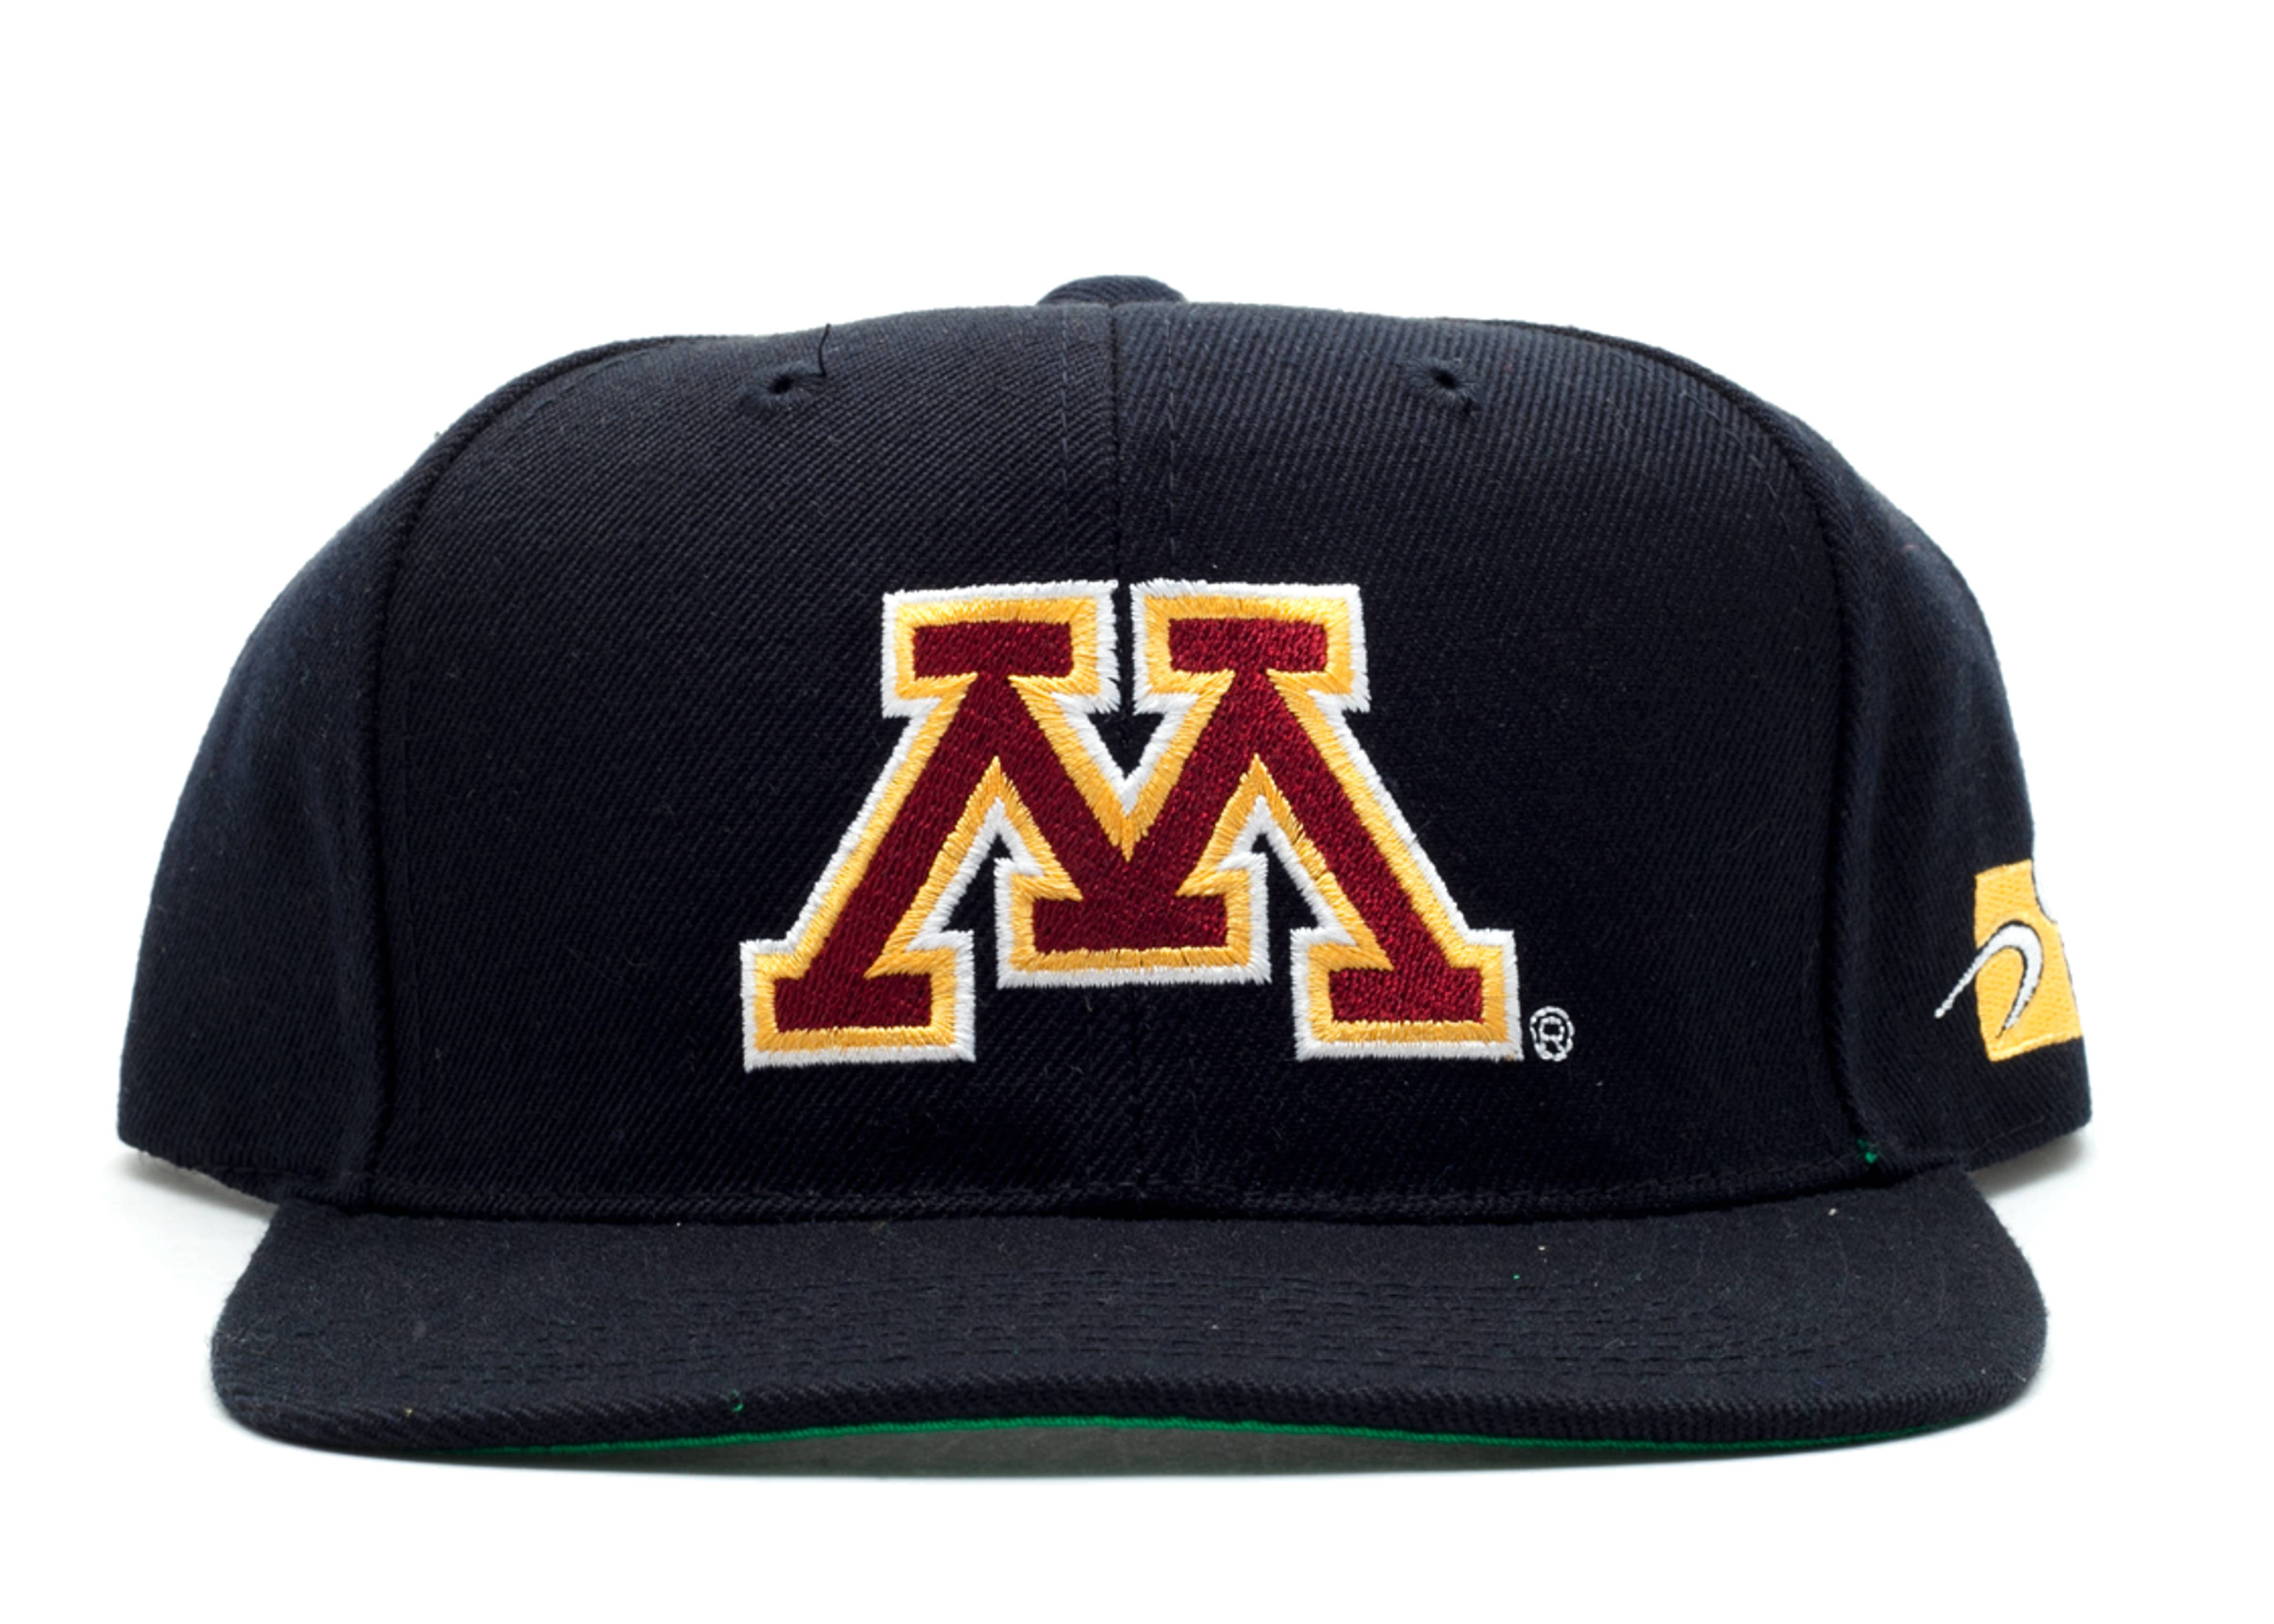 university of minnesota snap-back